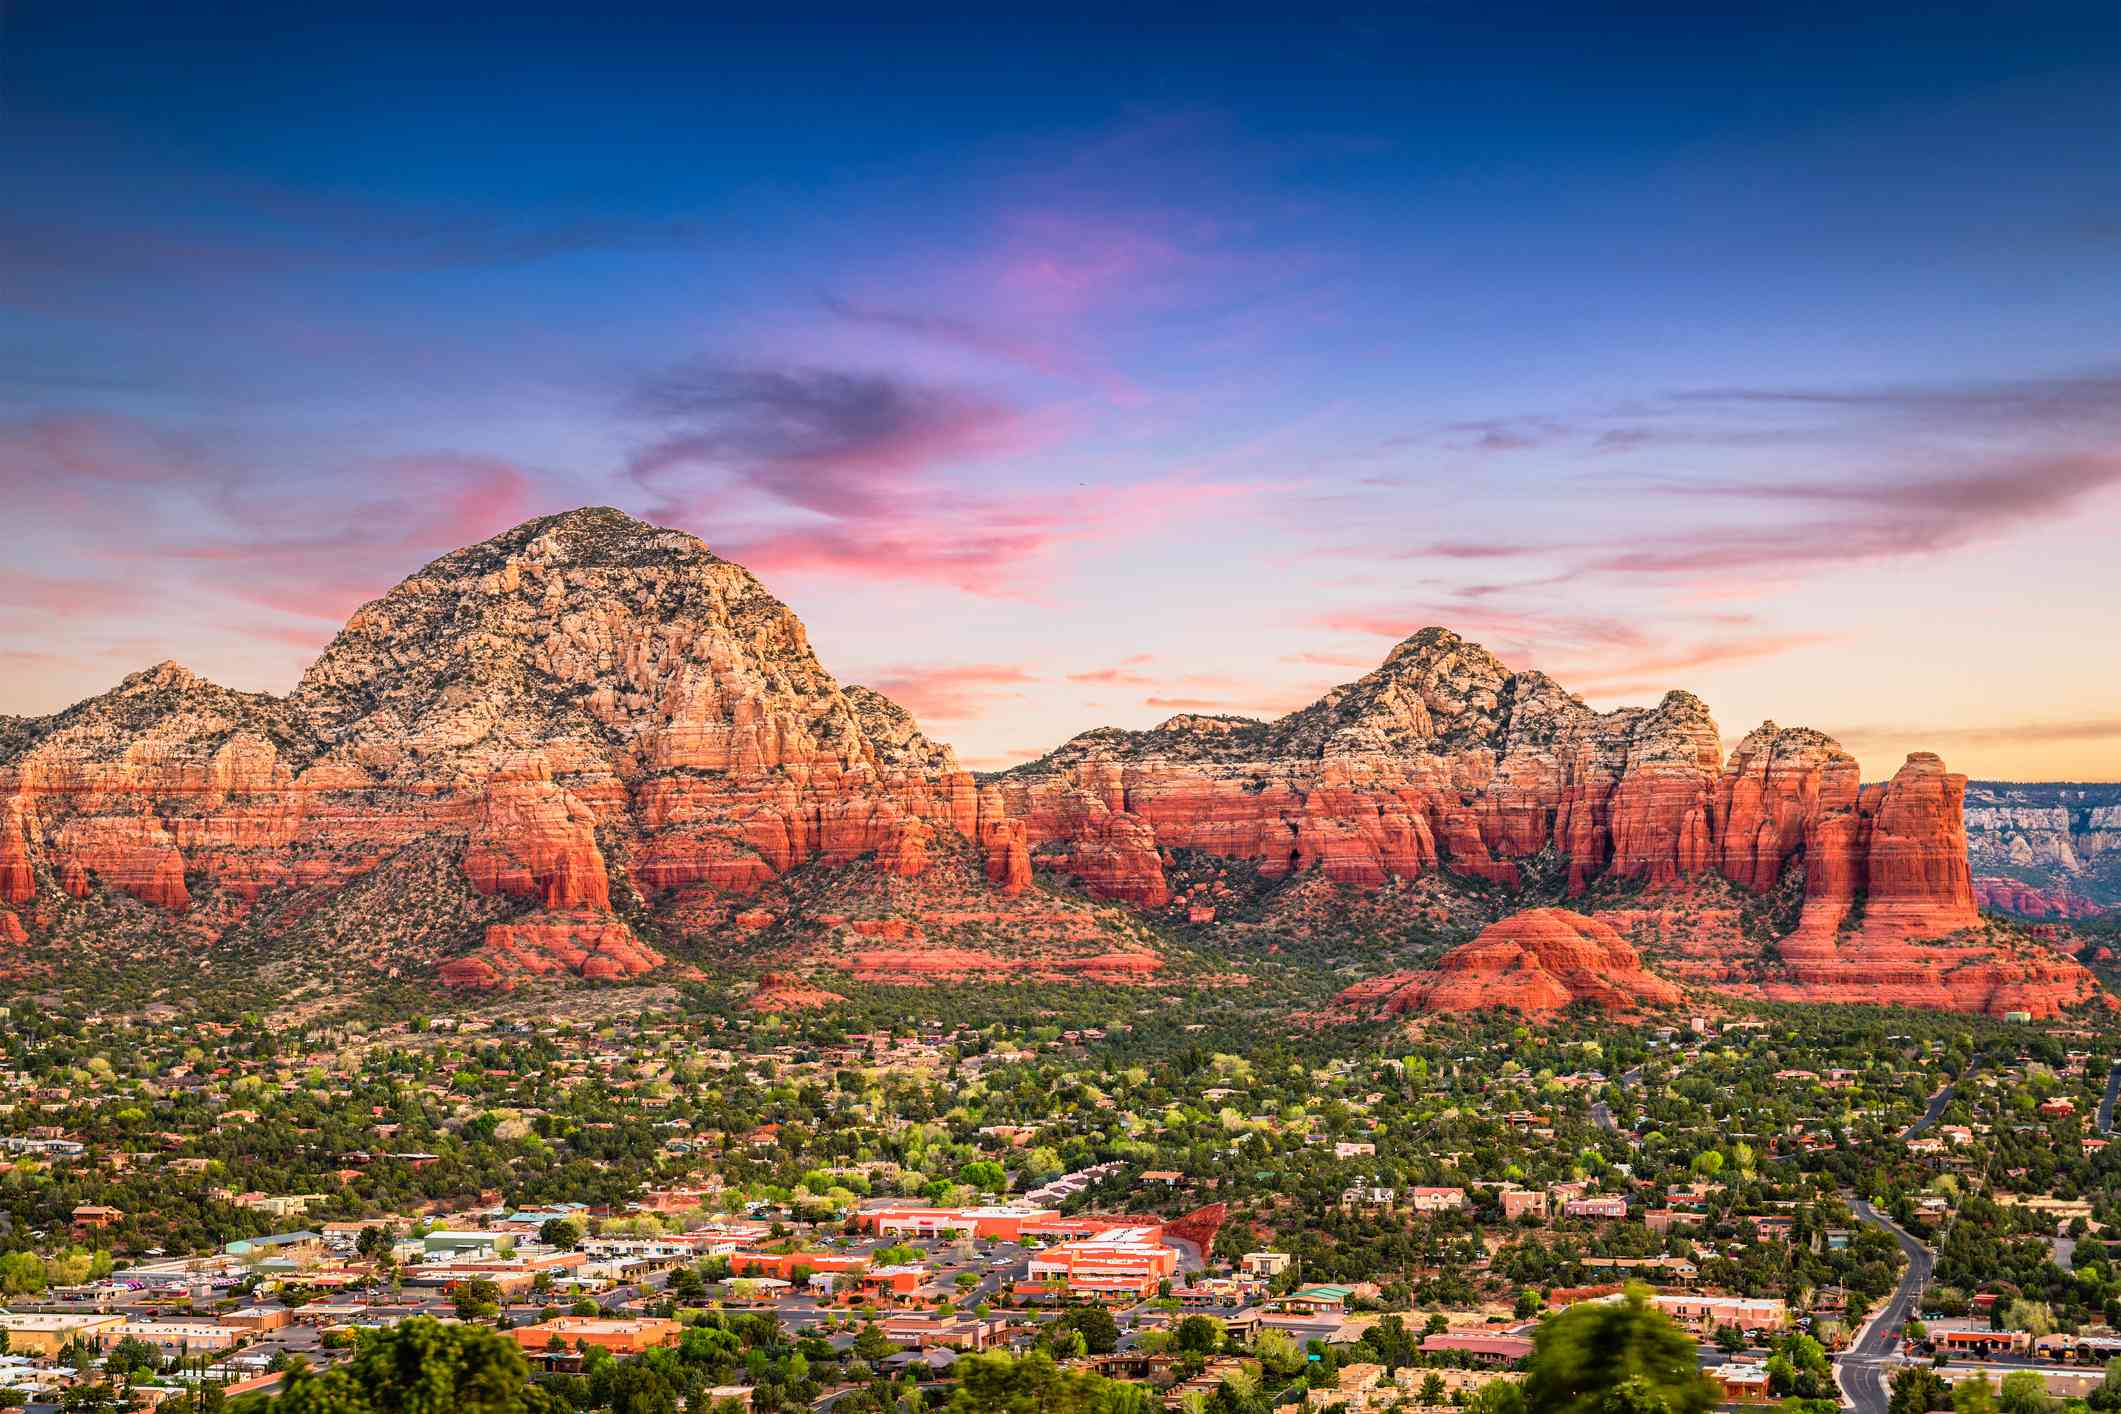 large red rock mountains at dusk with the city of Sedona at the base